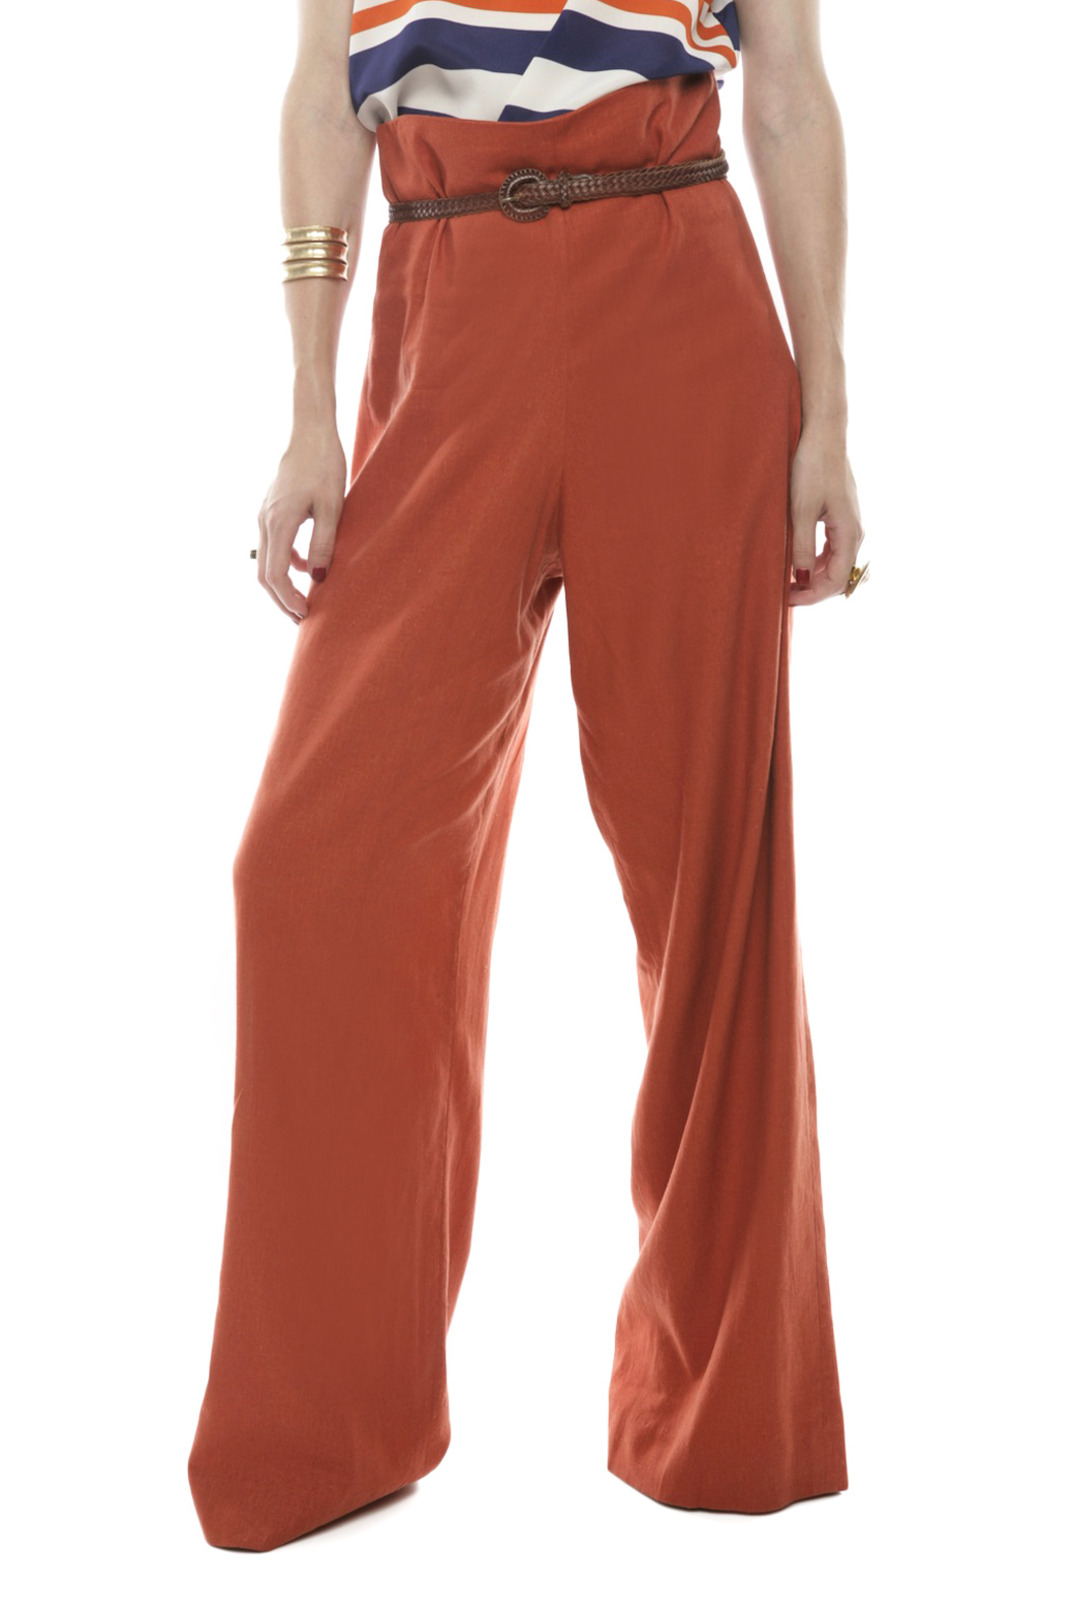 Devon Thomas Collection Wide-Leg Pants - Main Image